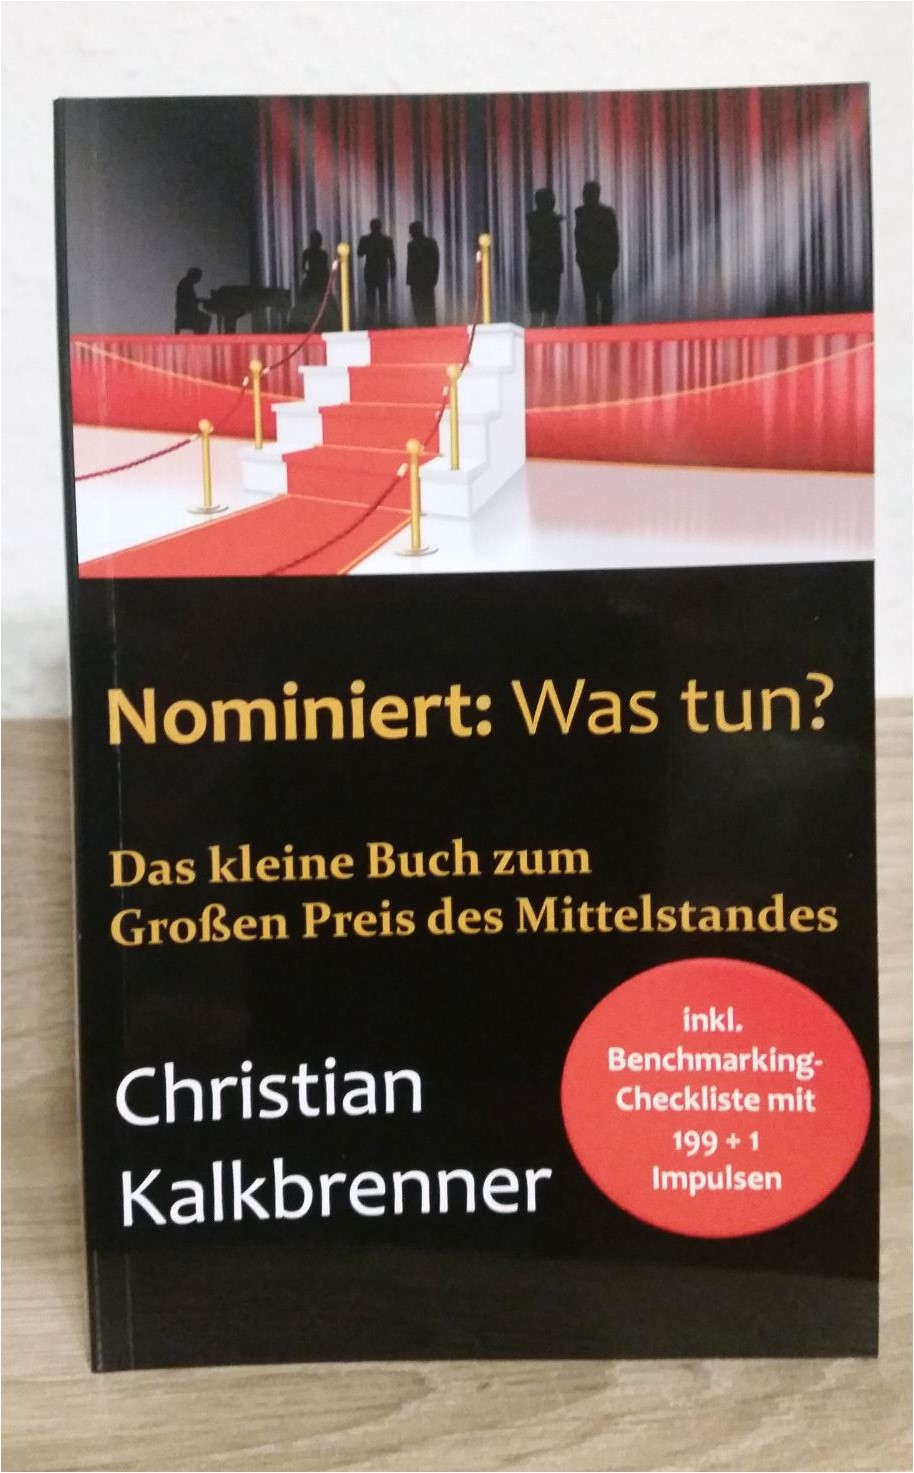 Nominiert: Was tun?